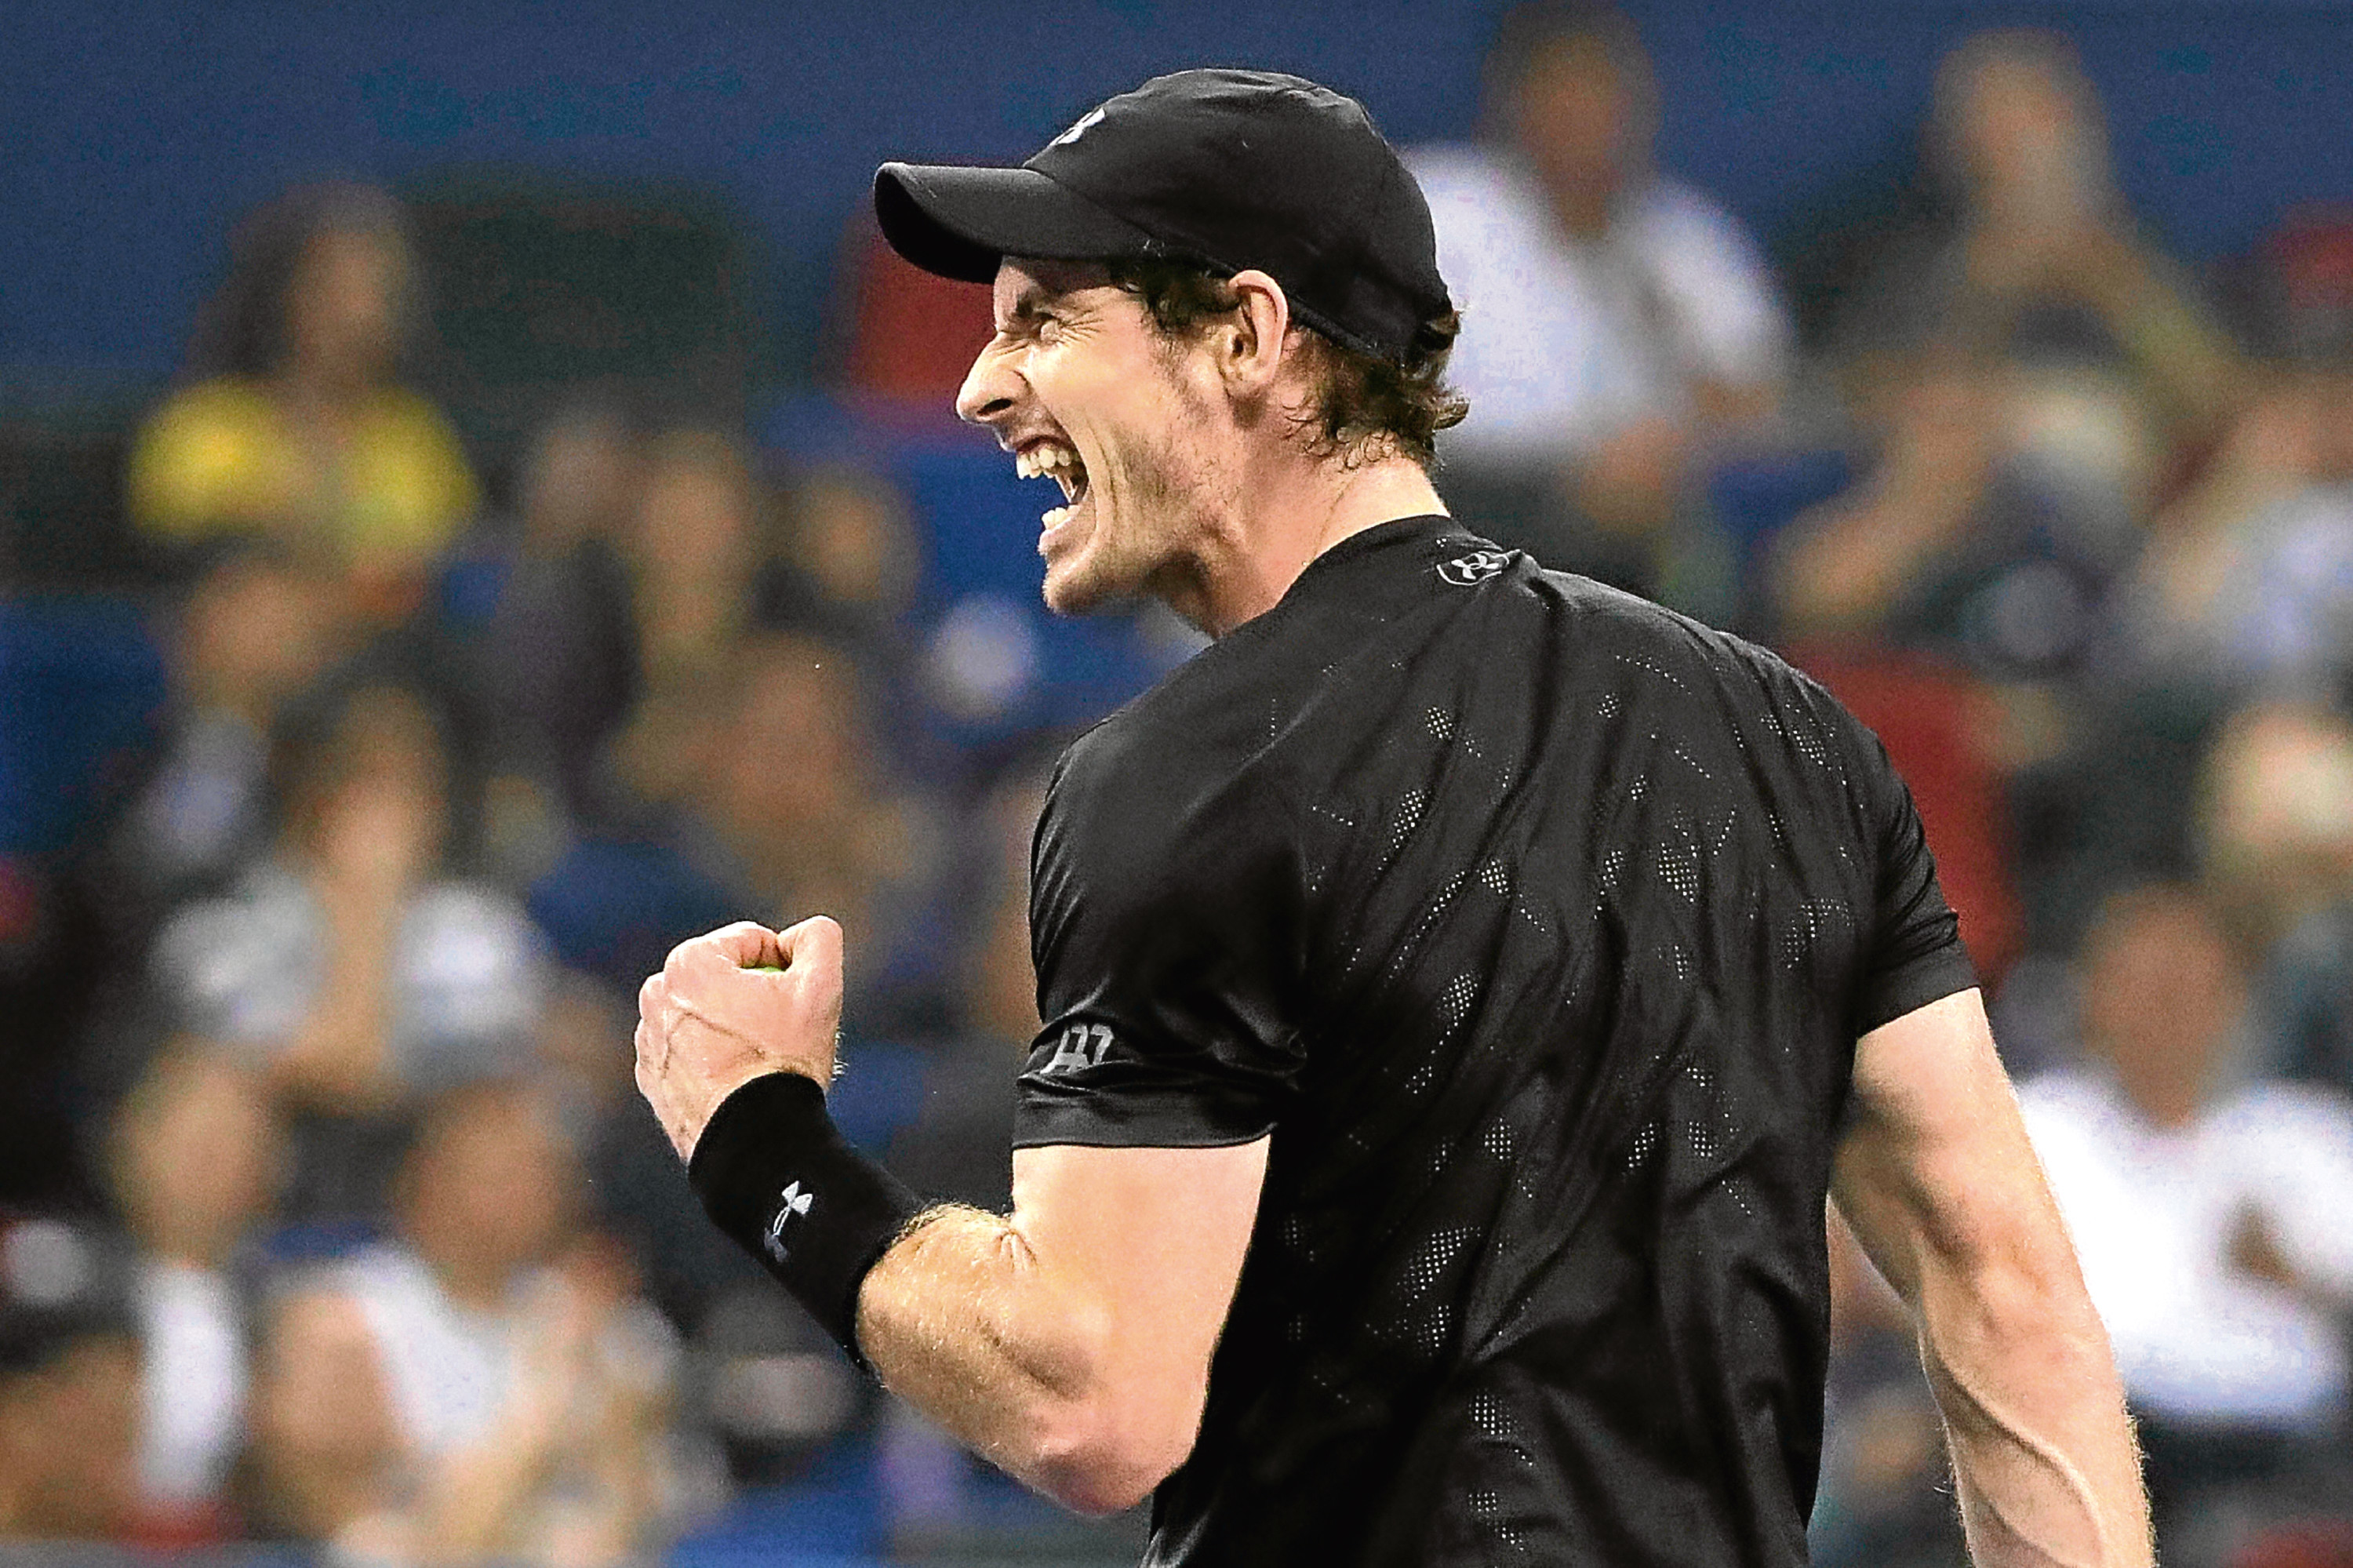 Andy Murray , the world's top ranked tennis player.